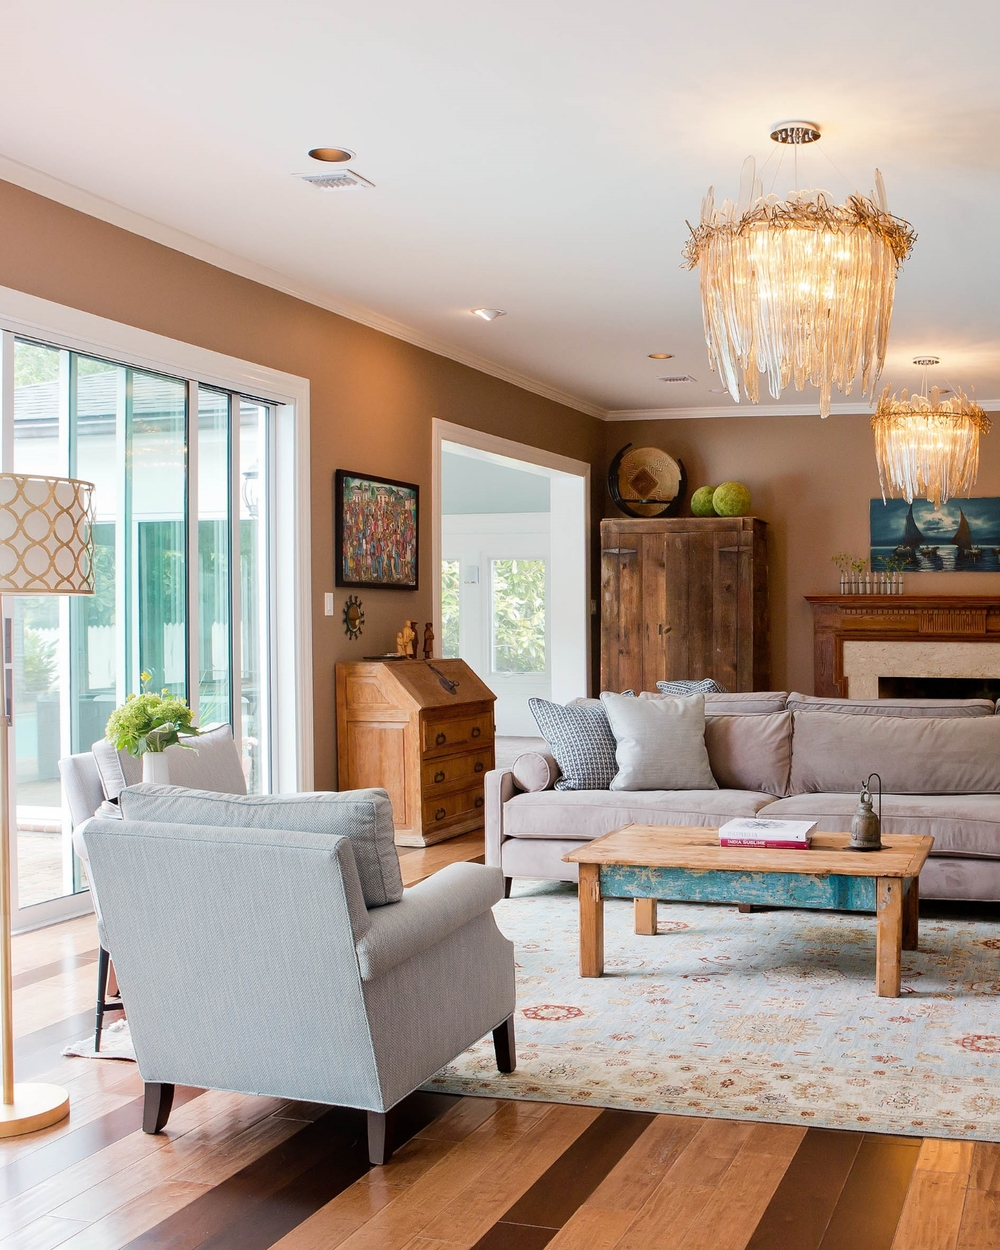 Unique chandelier lighting. Custom american made furniture and antique rustic furniture. Transitional design style. Photo: Matthew Lofton